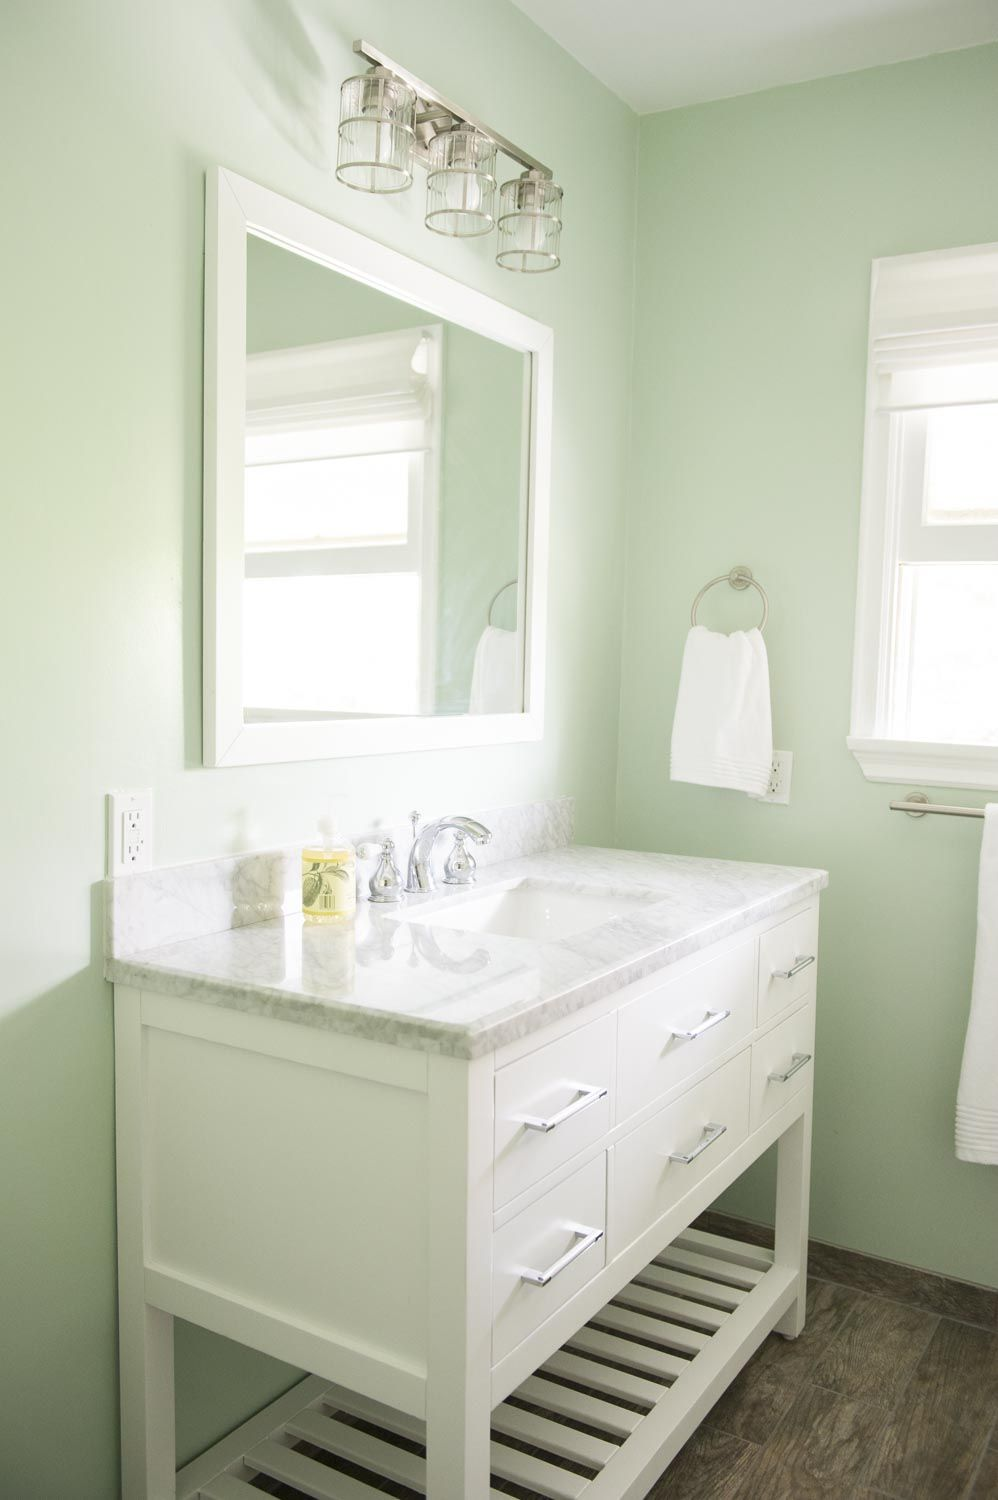 Benjamin moore paint home depot - Paint California Bathroom Remodel Vanity Home Depot Caroline Estate 48 Faucet